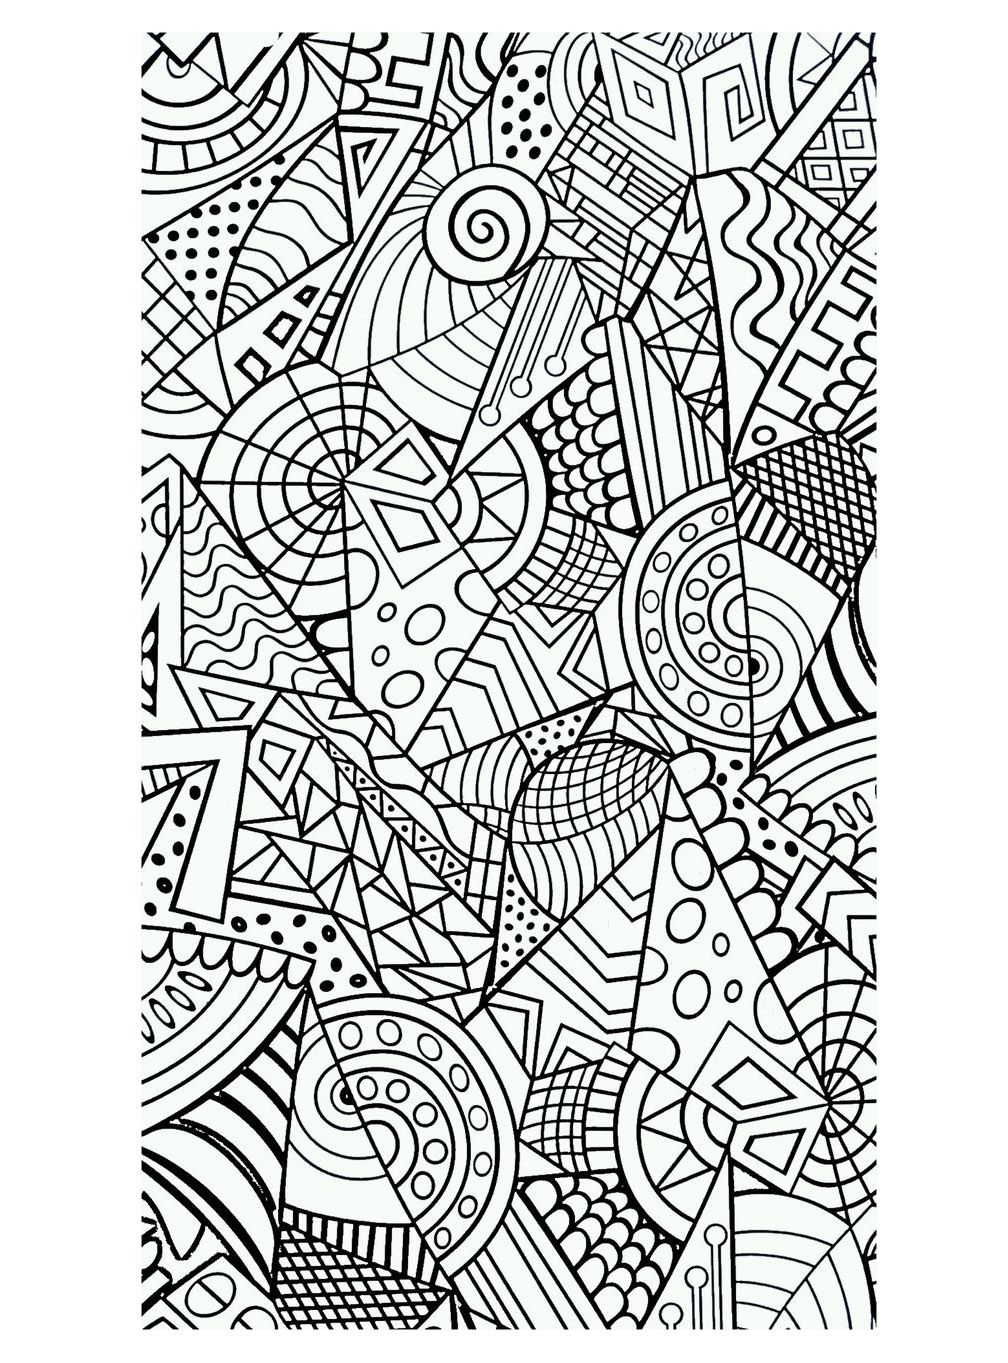 Harmonious forms - Zen and Anti stress Coloring Pages for Adults - Just Color - Page 2 (With ...